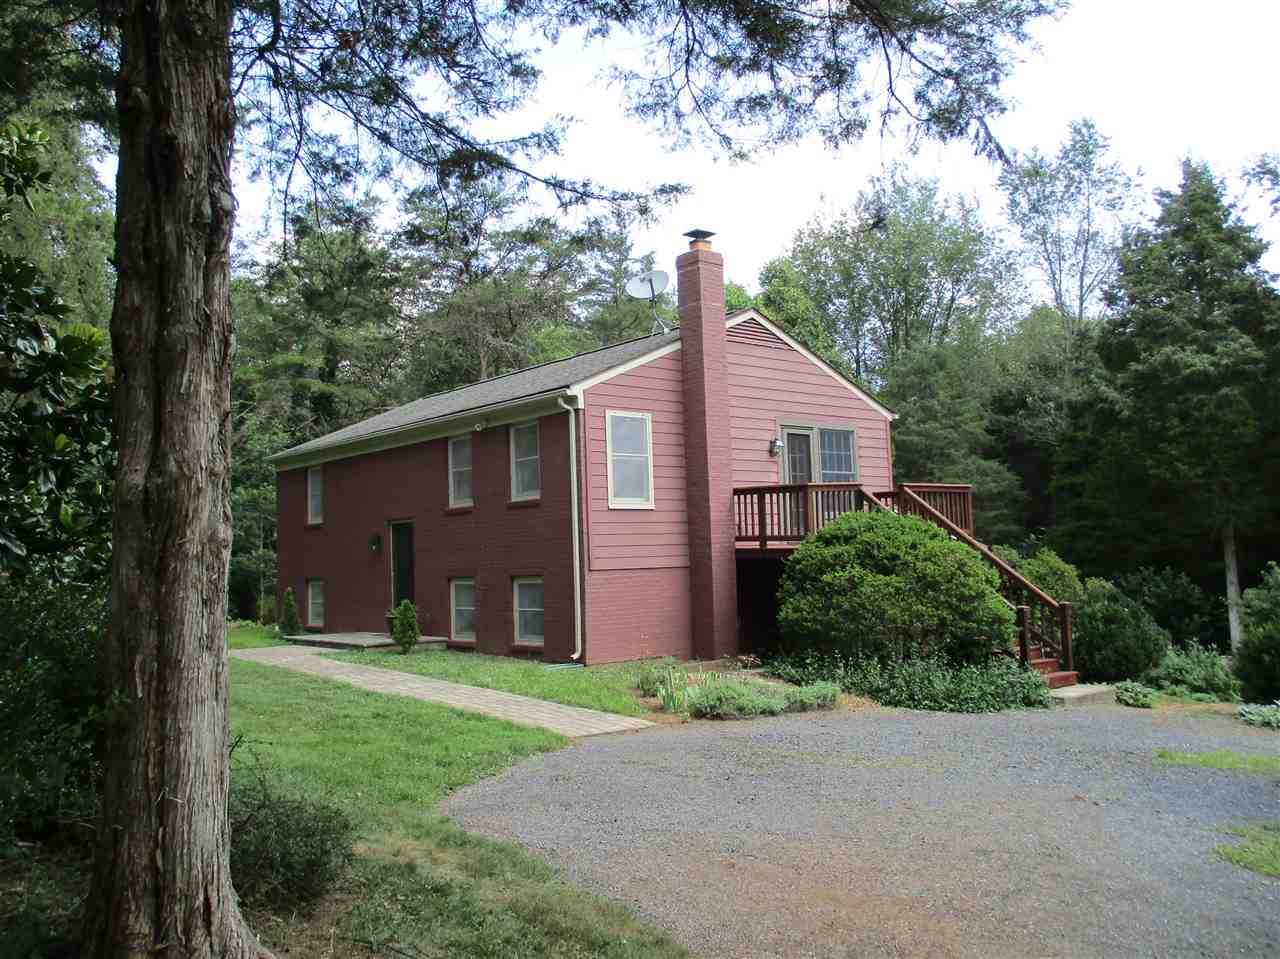 Image of Residential for Sale near Mount Solon, Virginia, in Augusta county: 5.00 acres